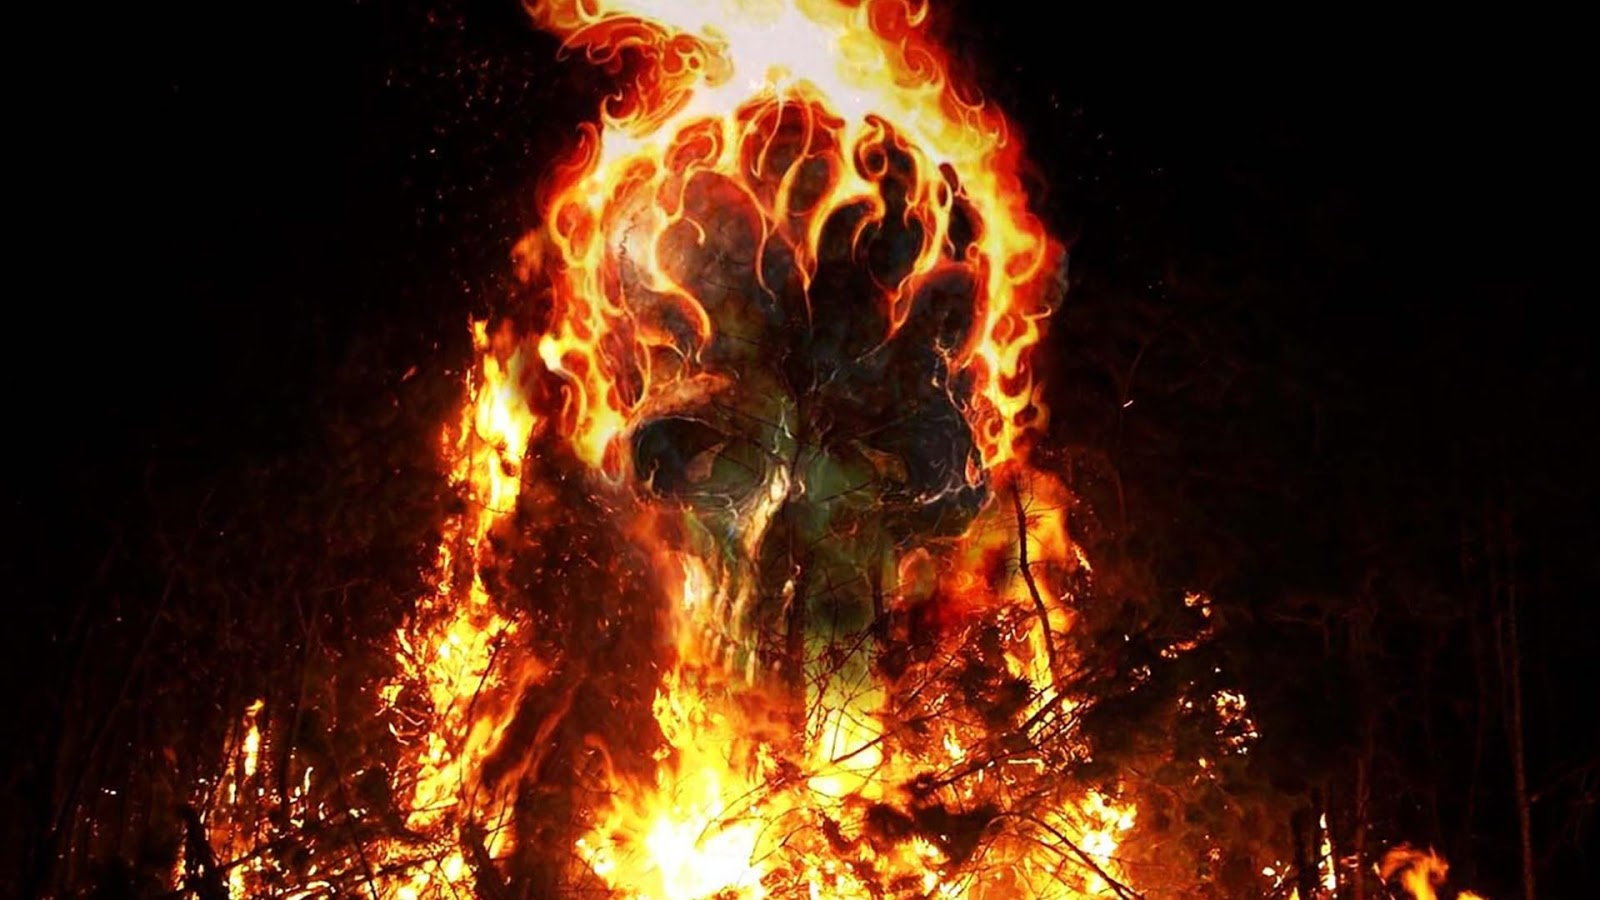 Fire Skulls Live Wallpaper   Android Apps on Google Play 1600x900